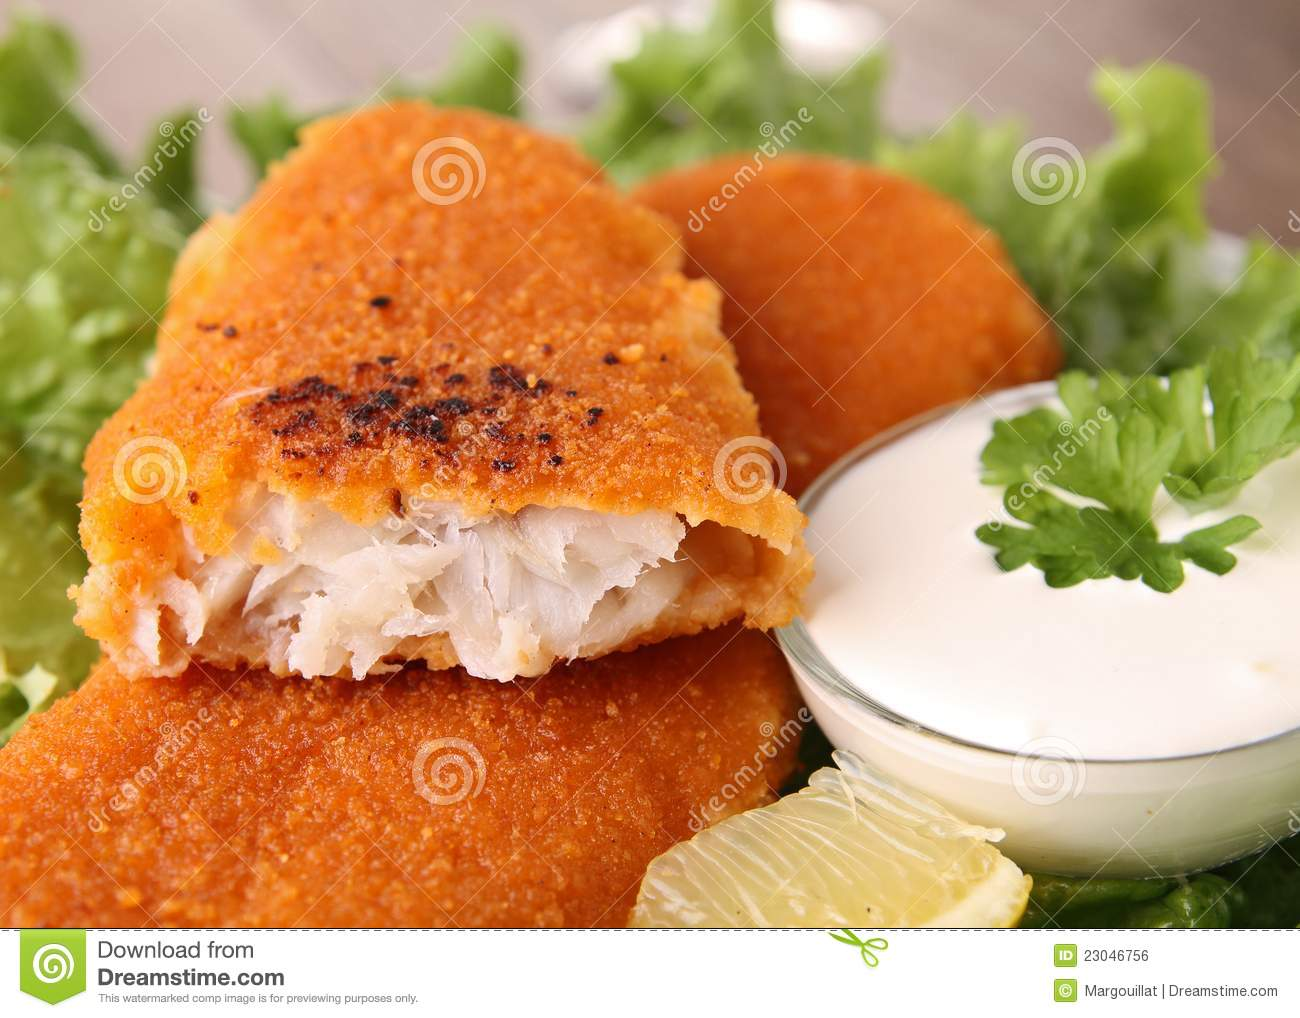 Breaded fish and vegetables royalty free stock image for How to make breaded fish